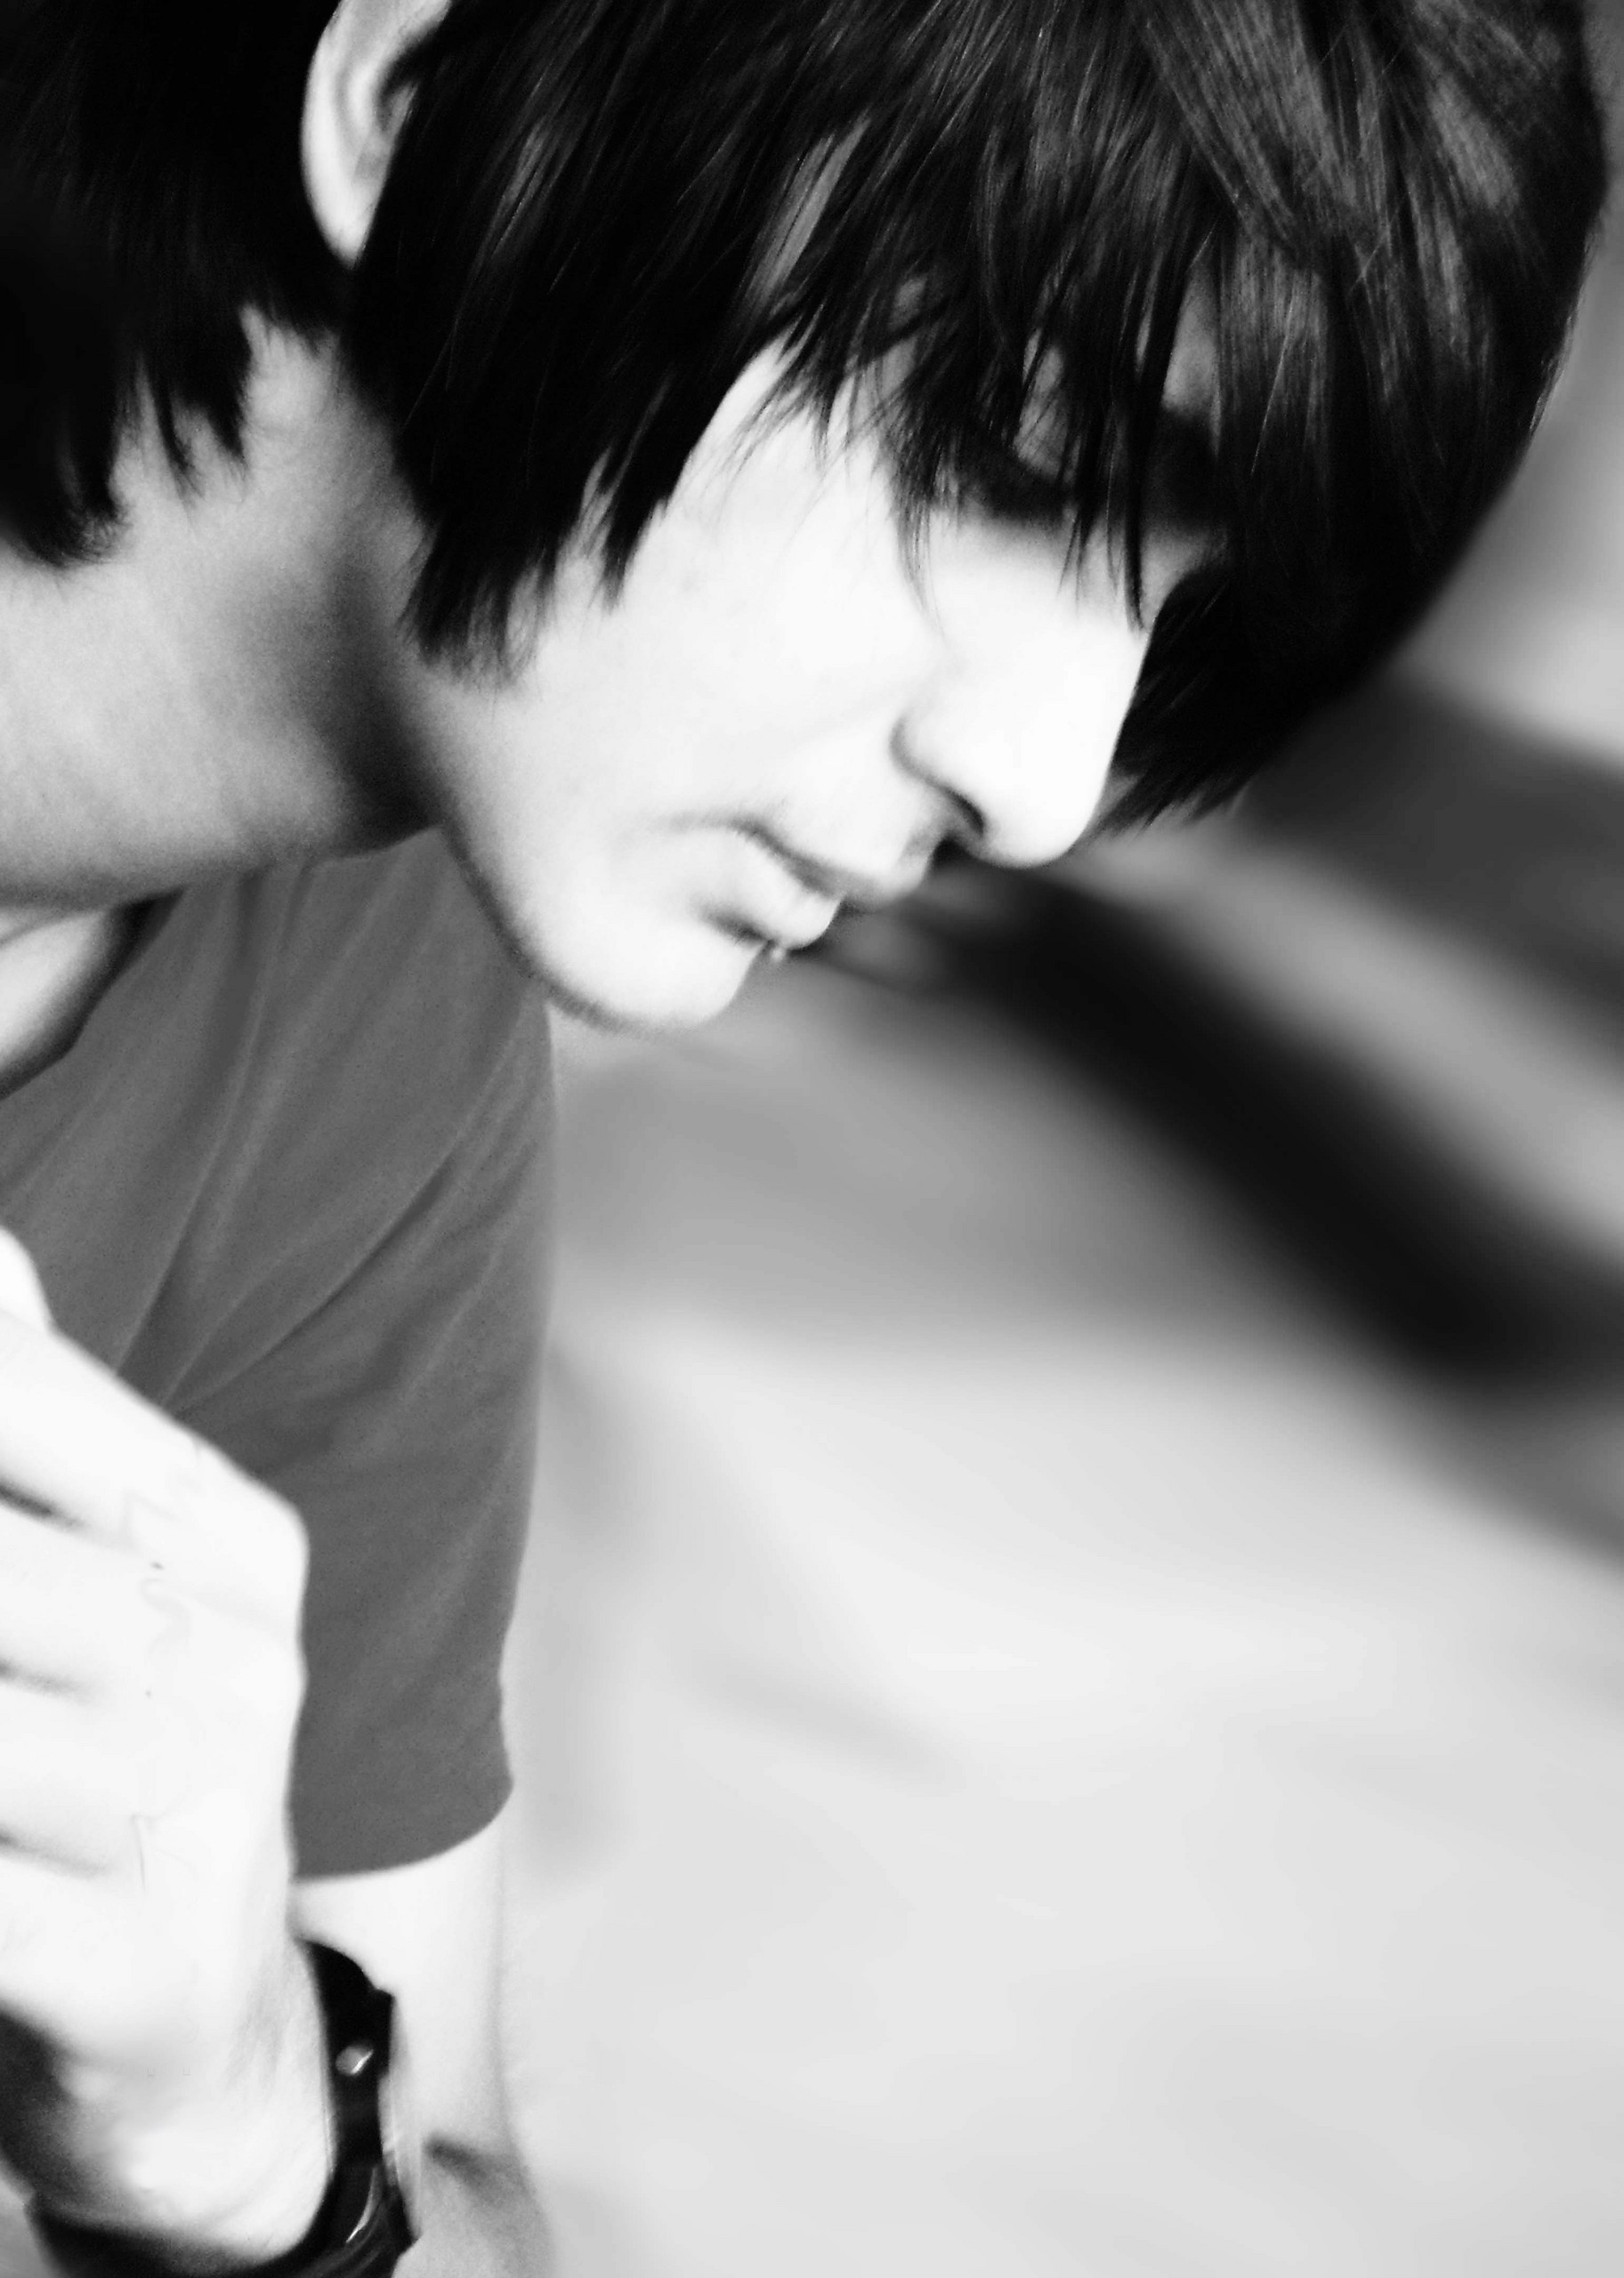 sad boy   photography by devian art   emo boys photo 30741811